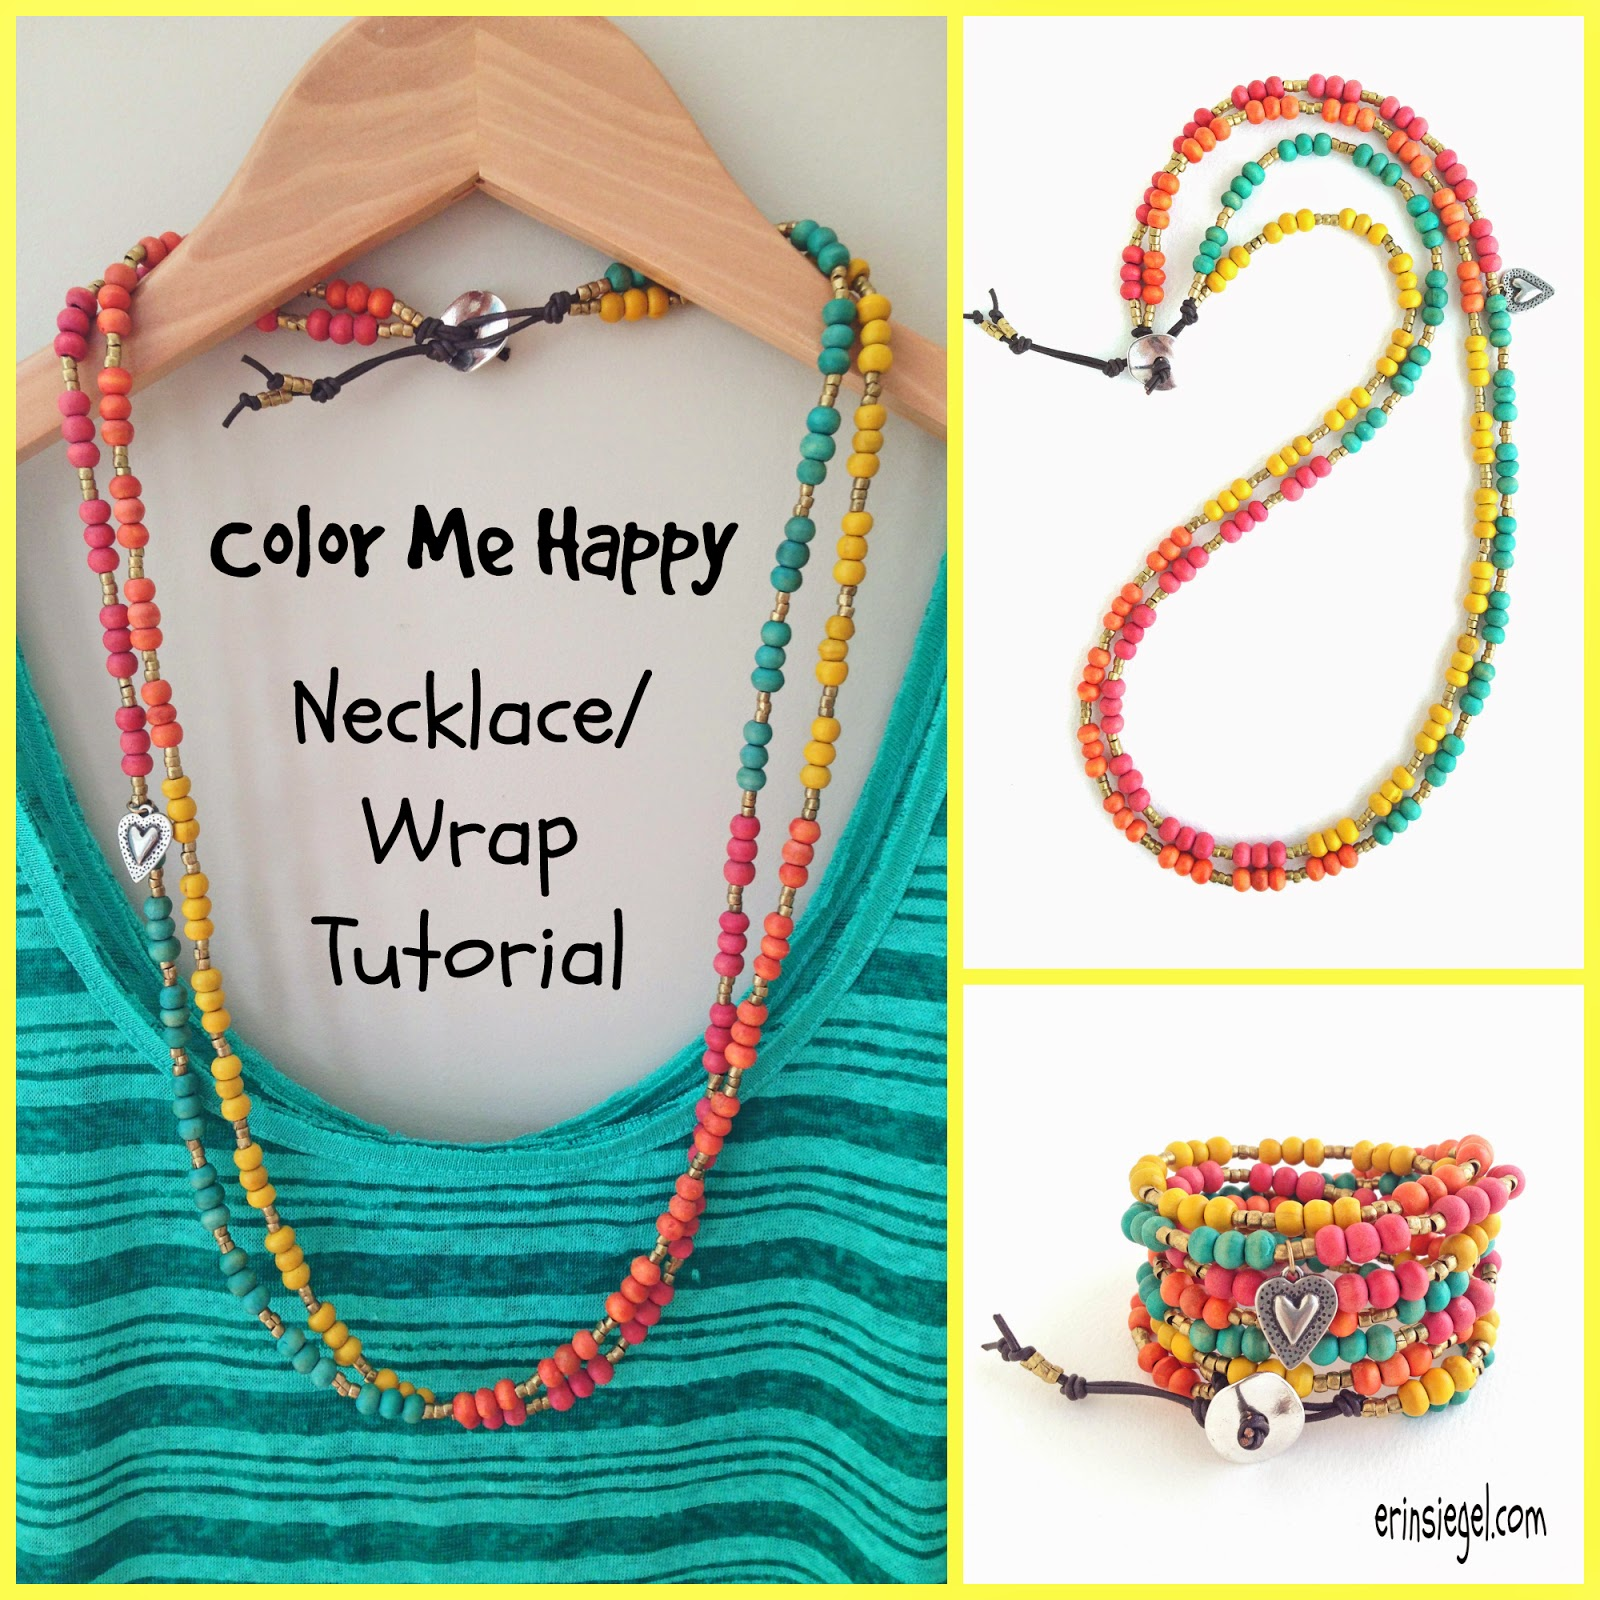 http://www.erinsiegeljewelry.blogspot.com/2014/05/color-me-happy-necklacewrap-diy-tutorial.html